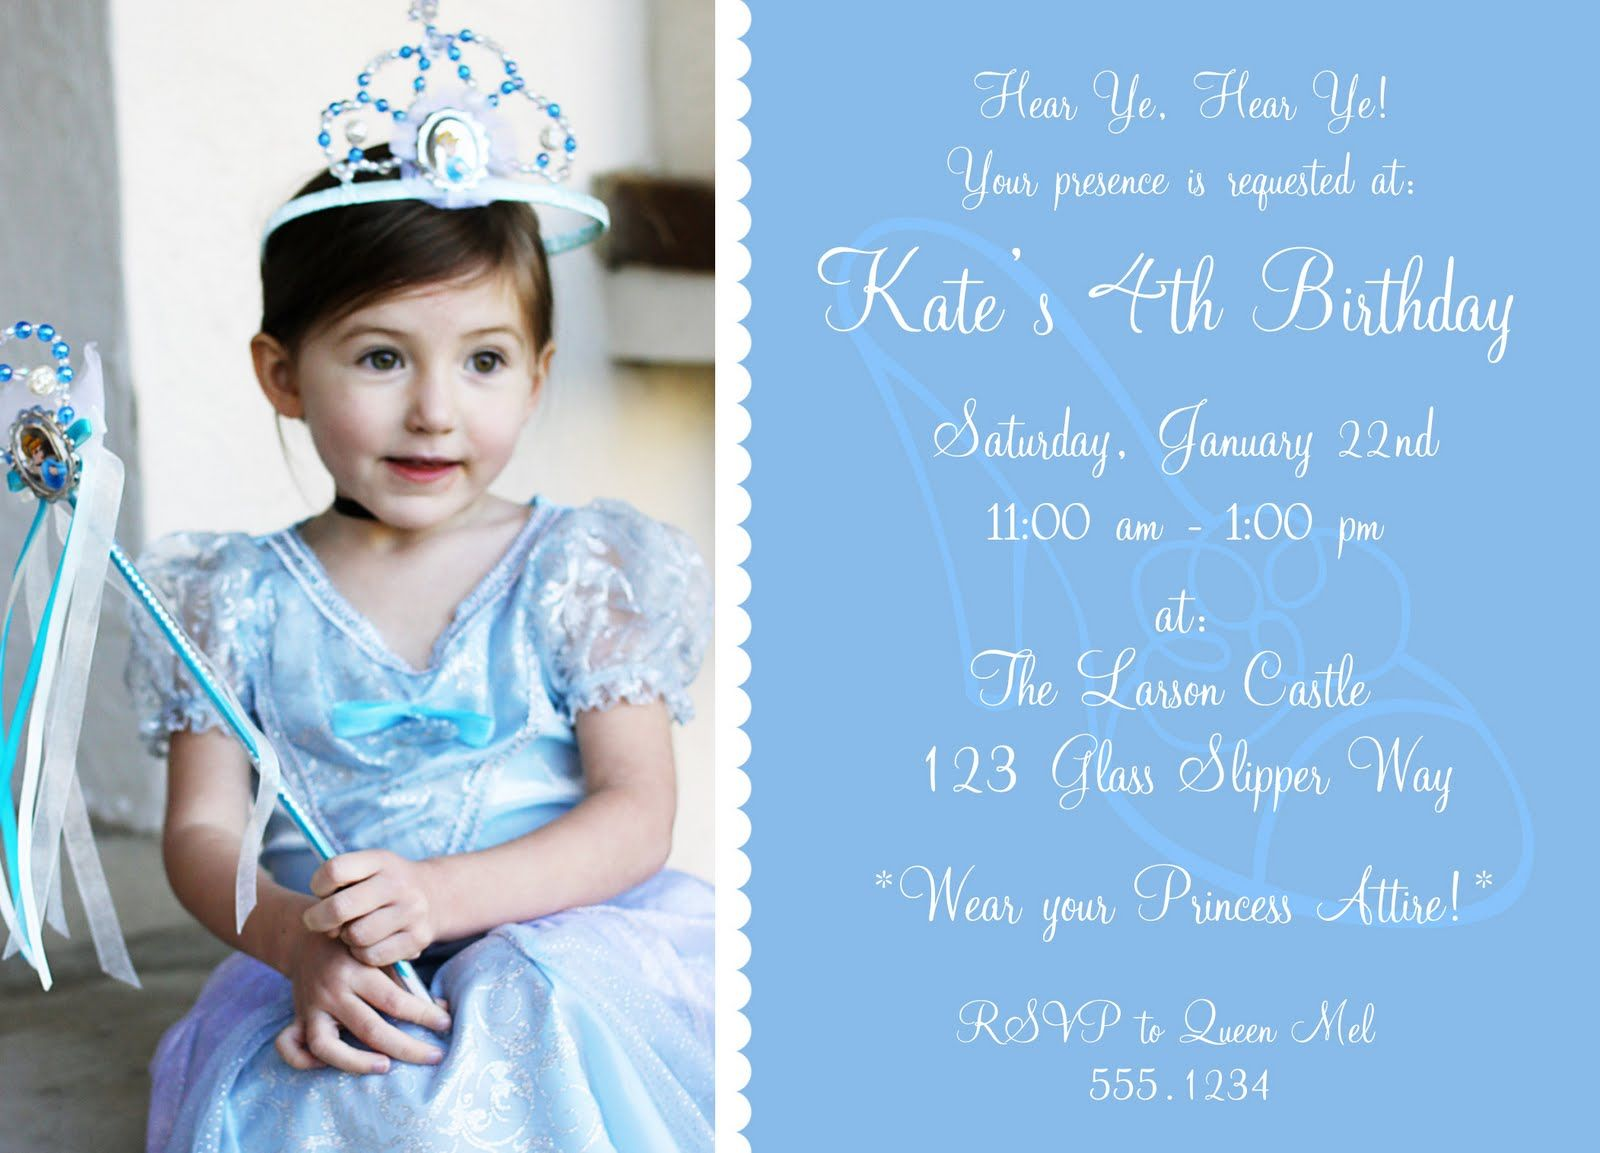 Cute cinderella party ideas coloring making their own crown etc cute cinderella party ideas coloring making their own crown etc stopboris Image collections